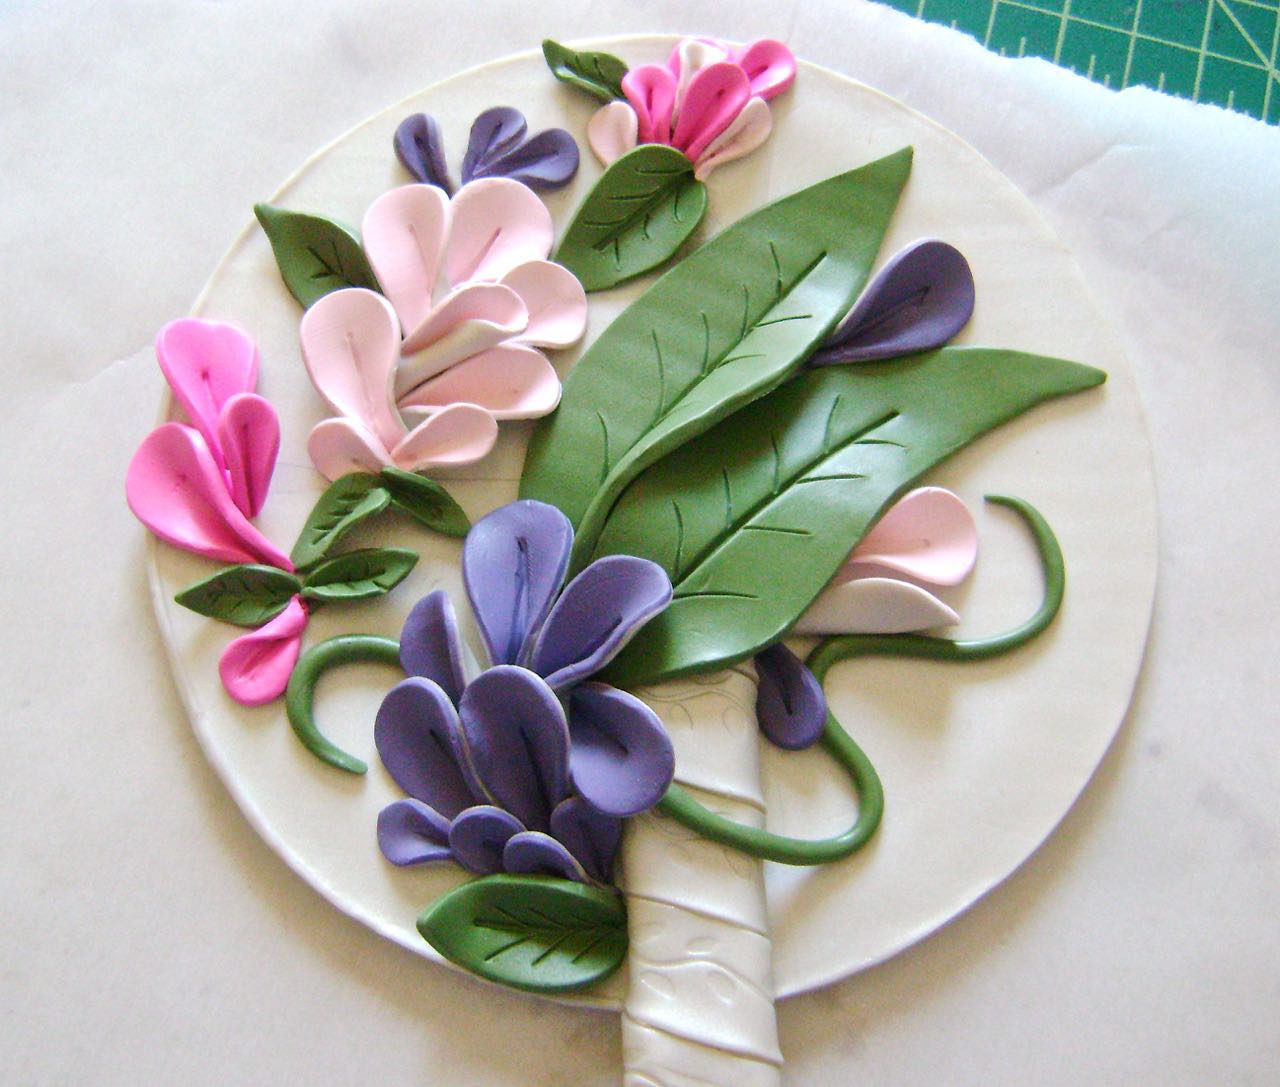 step 14 - Arrange the petals and leaves surrounding the handle and scattered about the rest of the base.